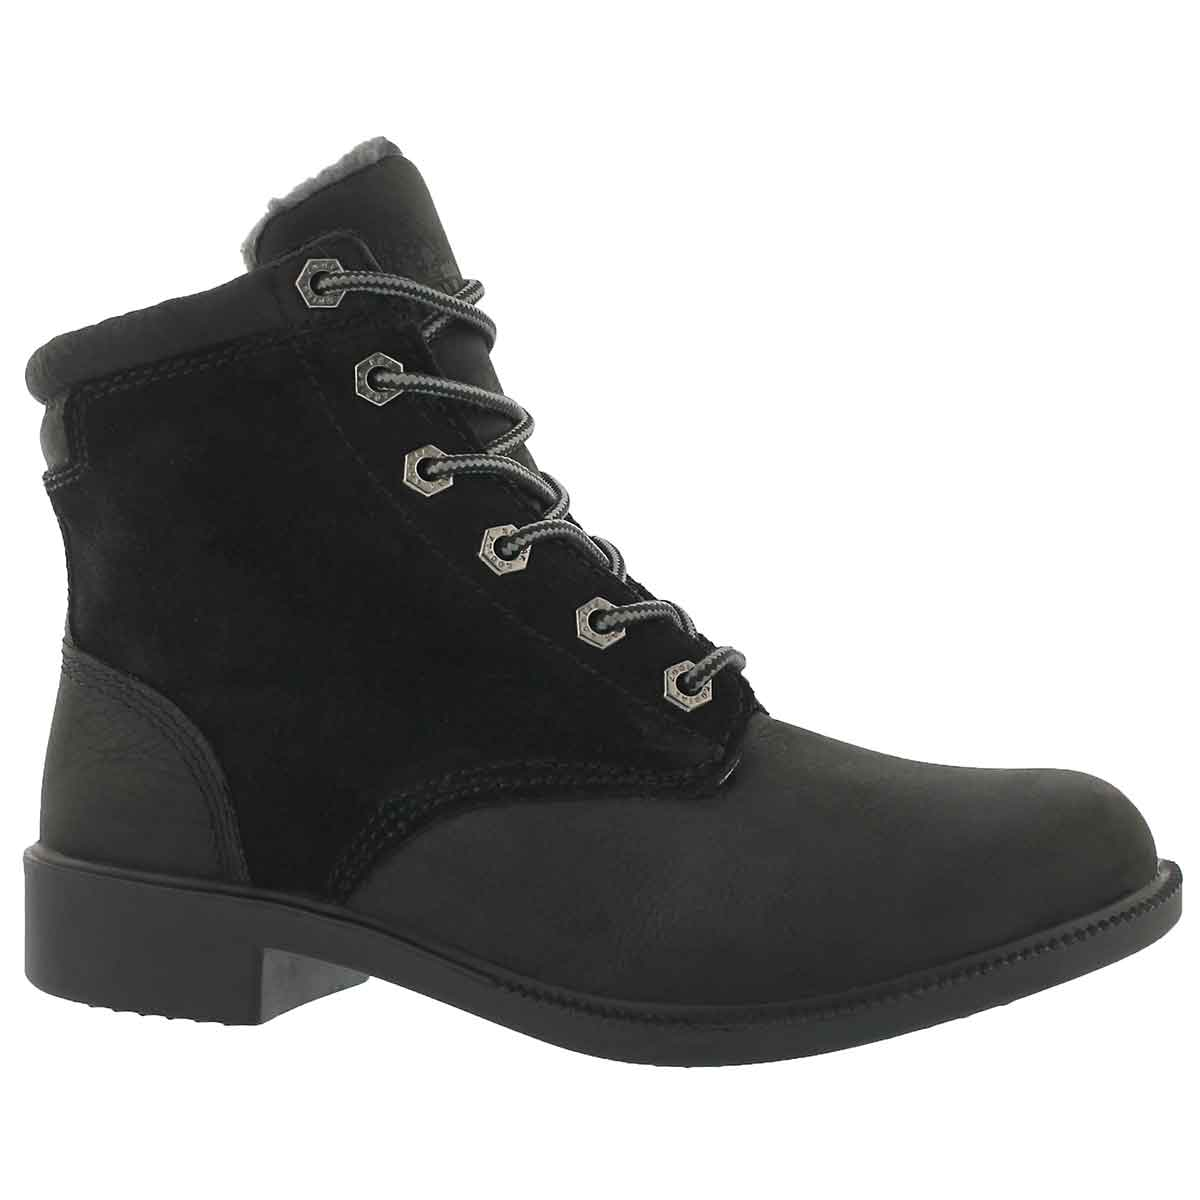 Women's ORIGINAL FLEECE waterproof lace up boots